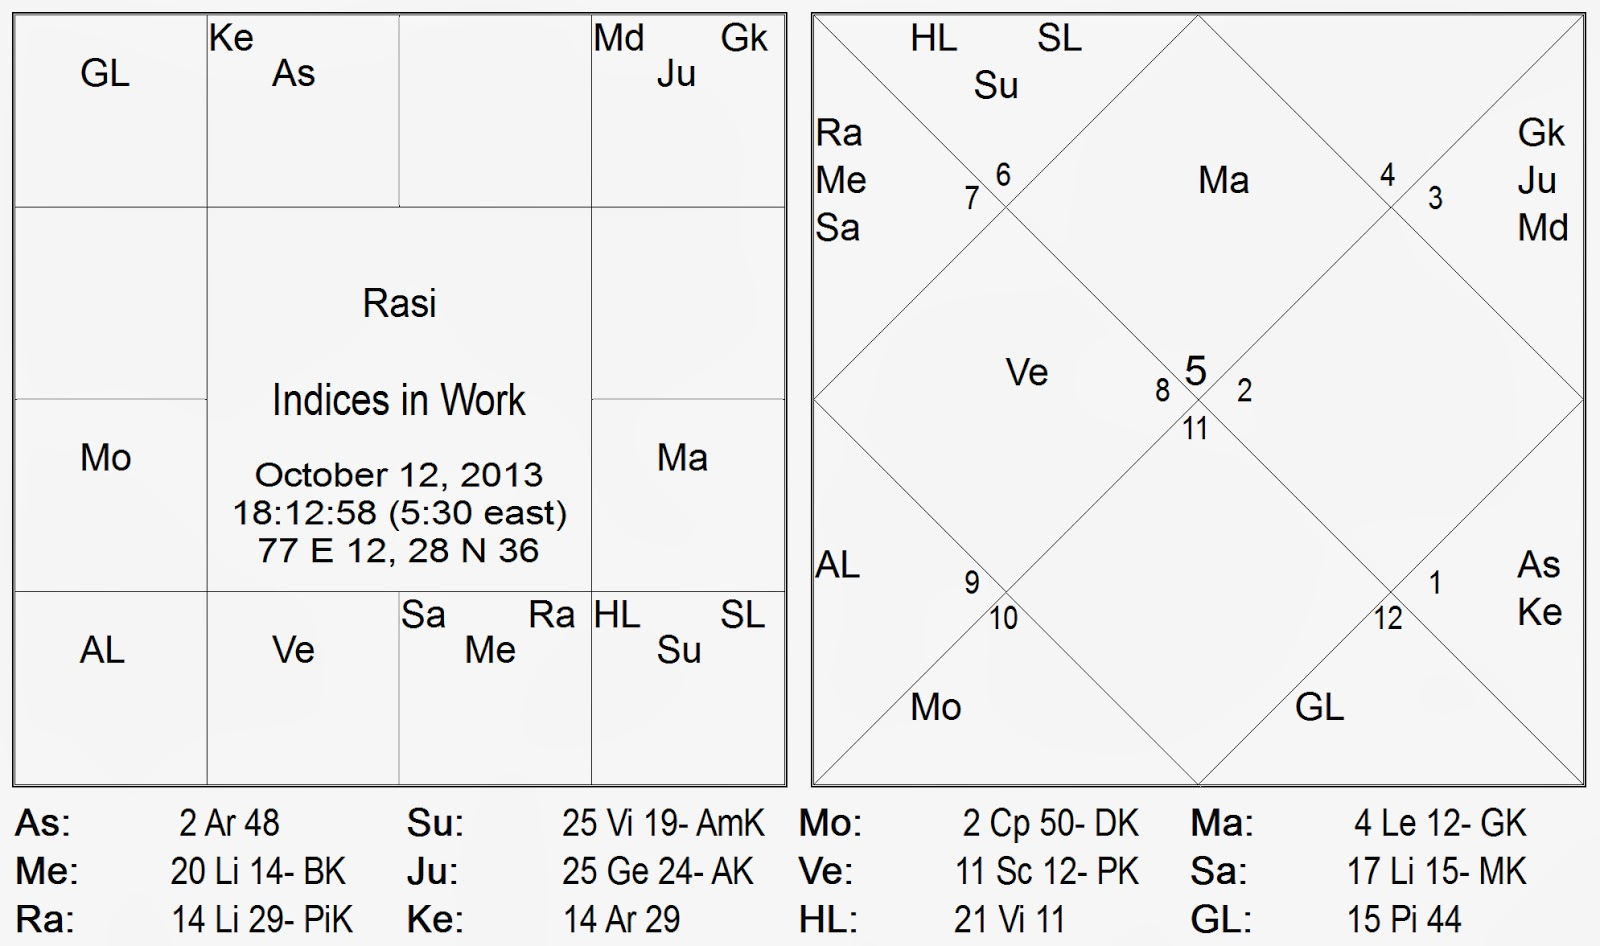 We can see that the moon is not conjoined any planet in capricorn and it does not receive any full special aspects graha d i drishti from any planet as